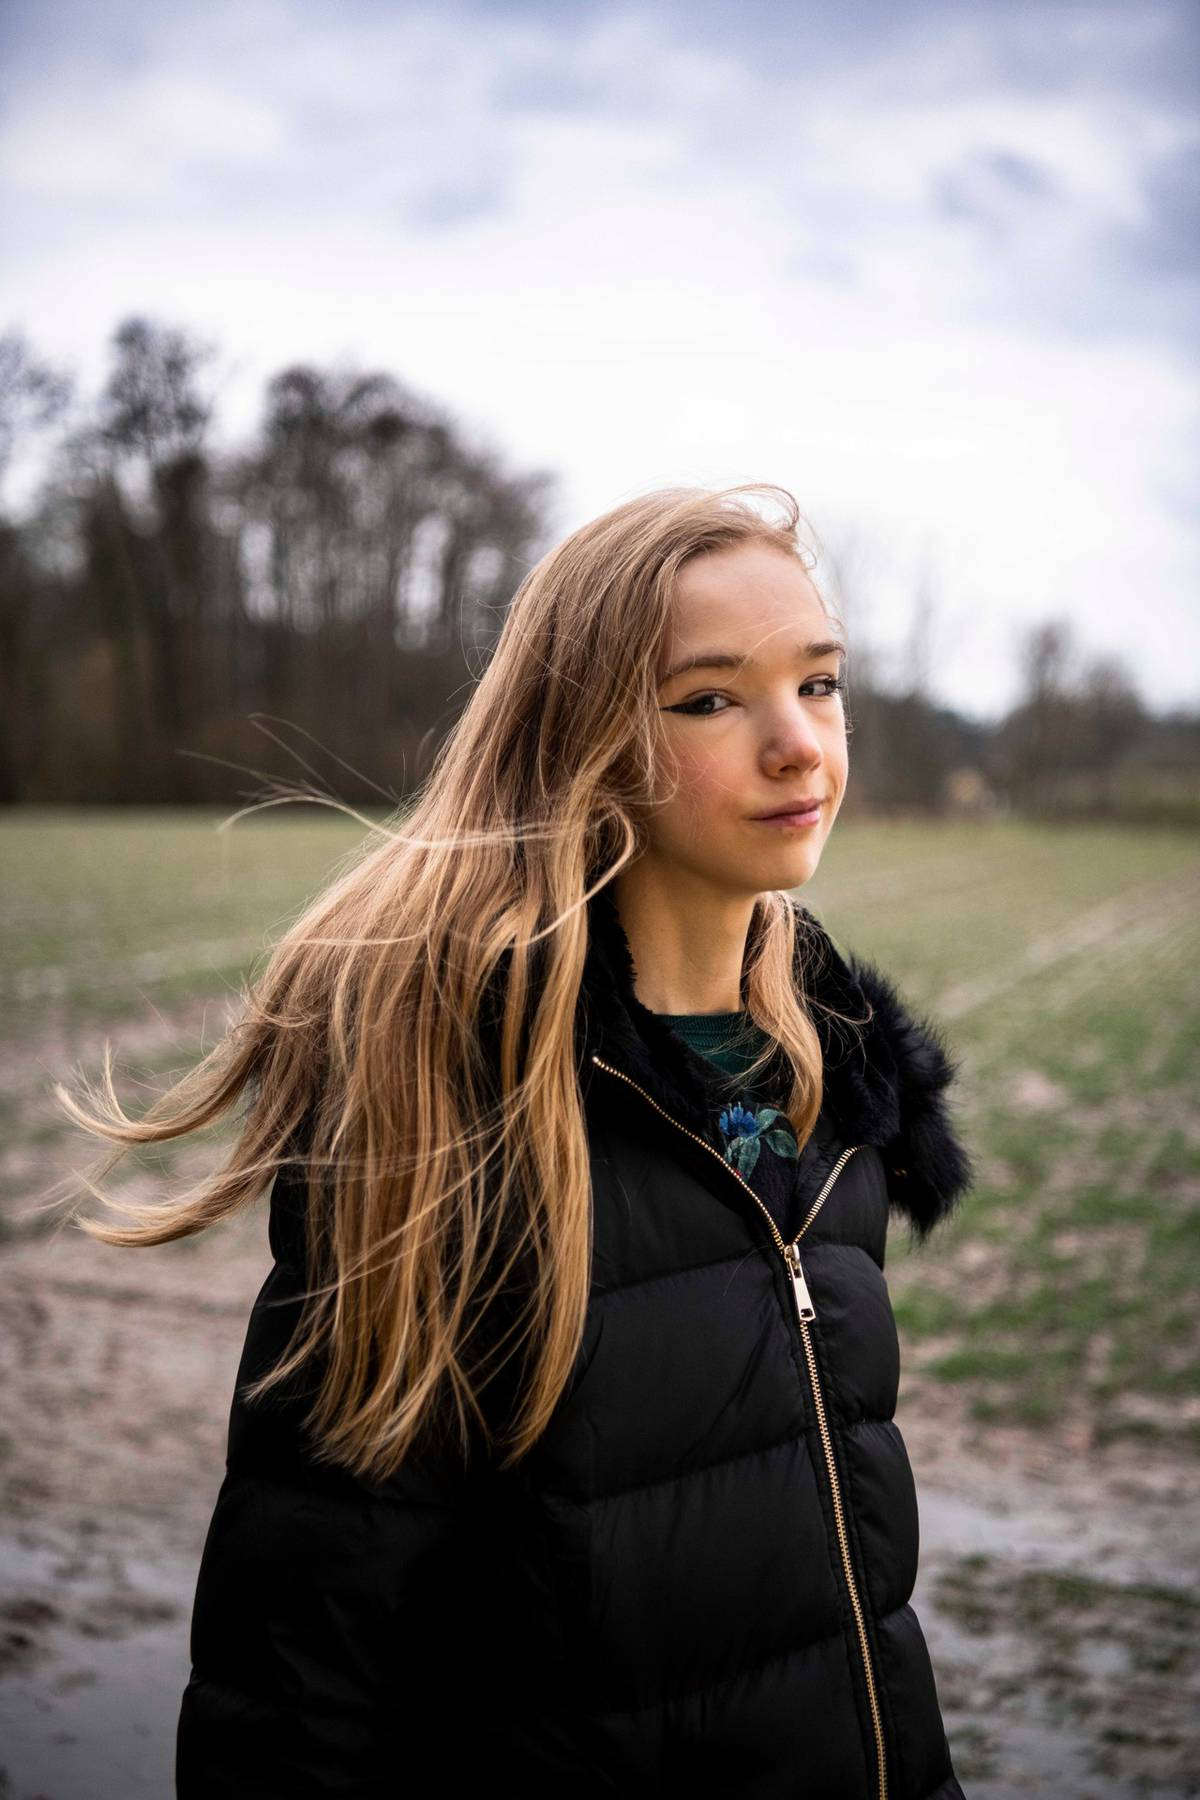 Climate wars: US think-tank pitches German teen as the 'anti-Greta'